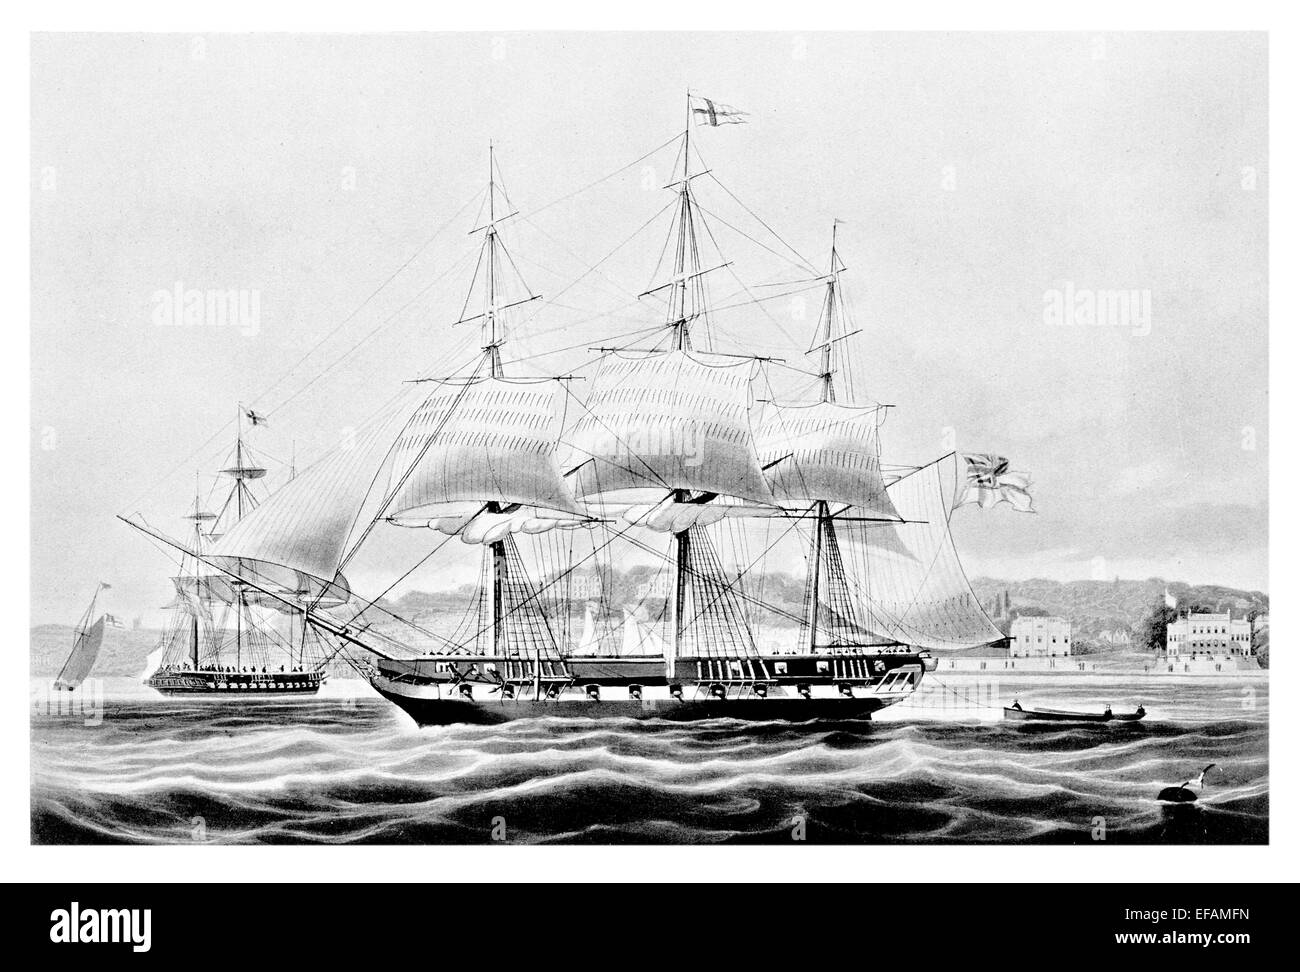 Yacht Falcon 1824 armed as Man of war sold 1836 given paddle wheels sent to Calcutta then used in Opium Trade - Stock Image